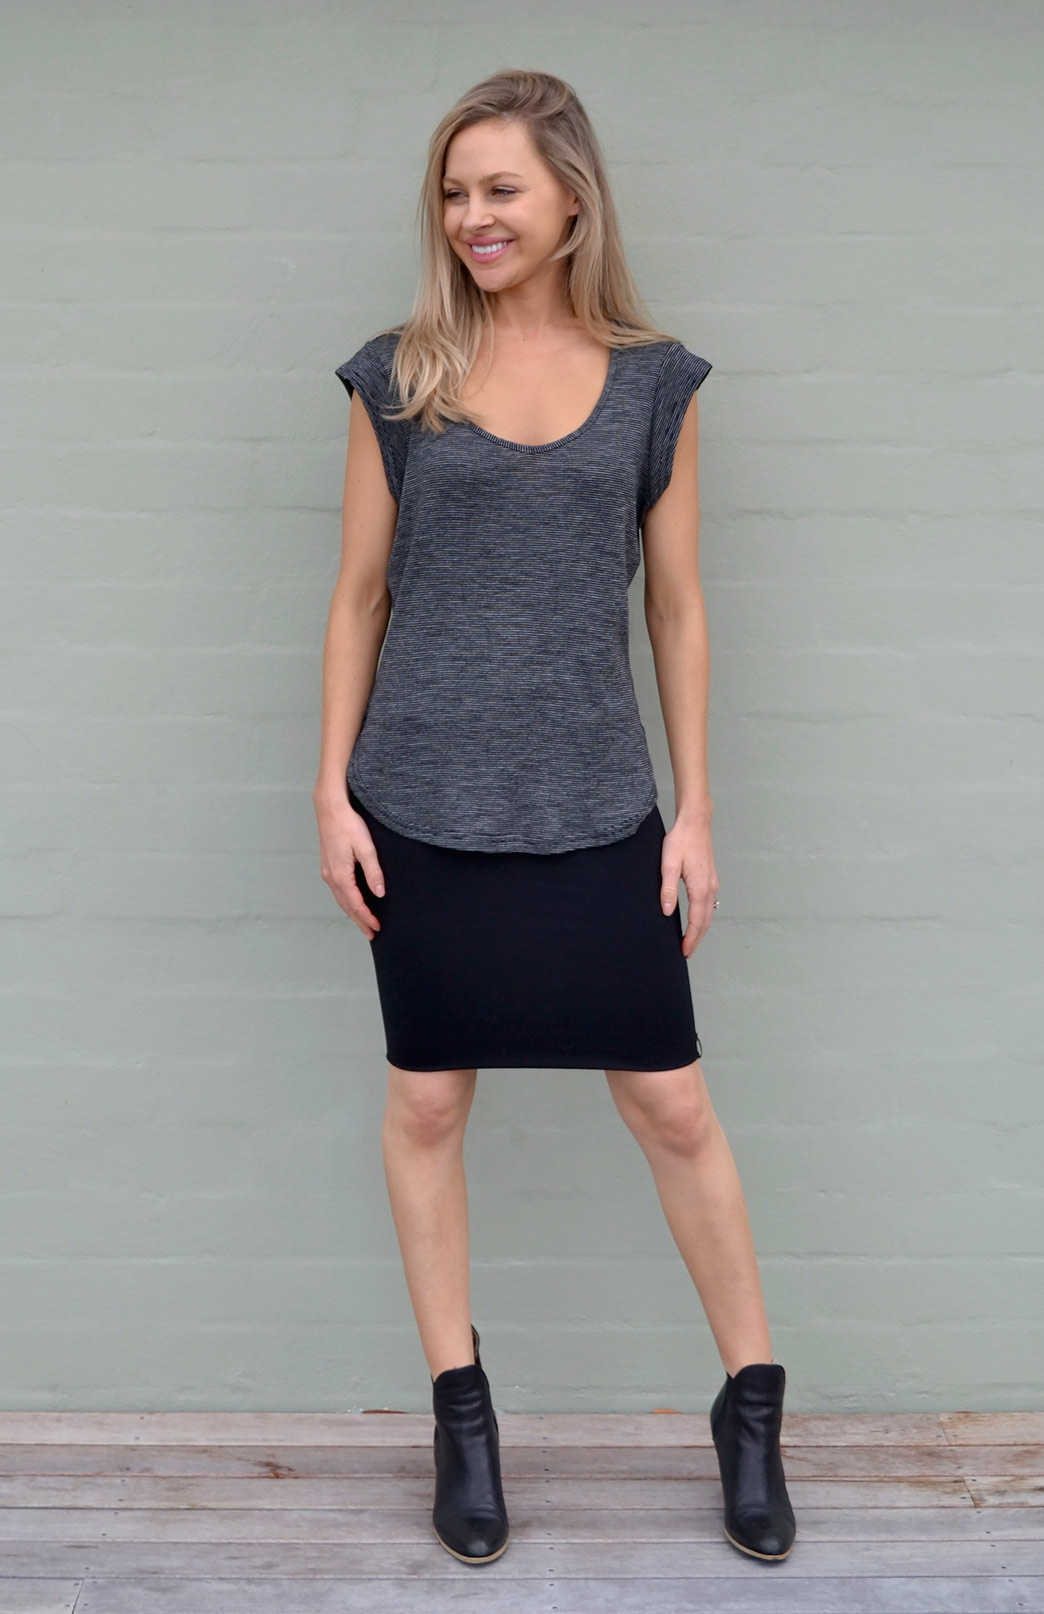 Short Tube Skirt - Women's Wool Black Short Mini Skirt - Smitten Merino Tasmania Australia